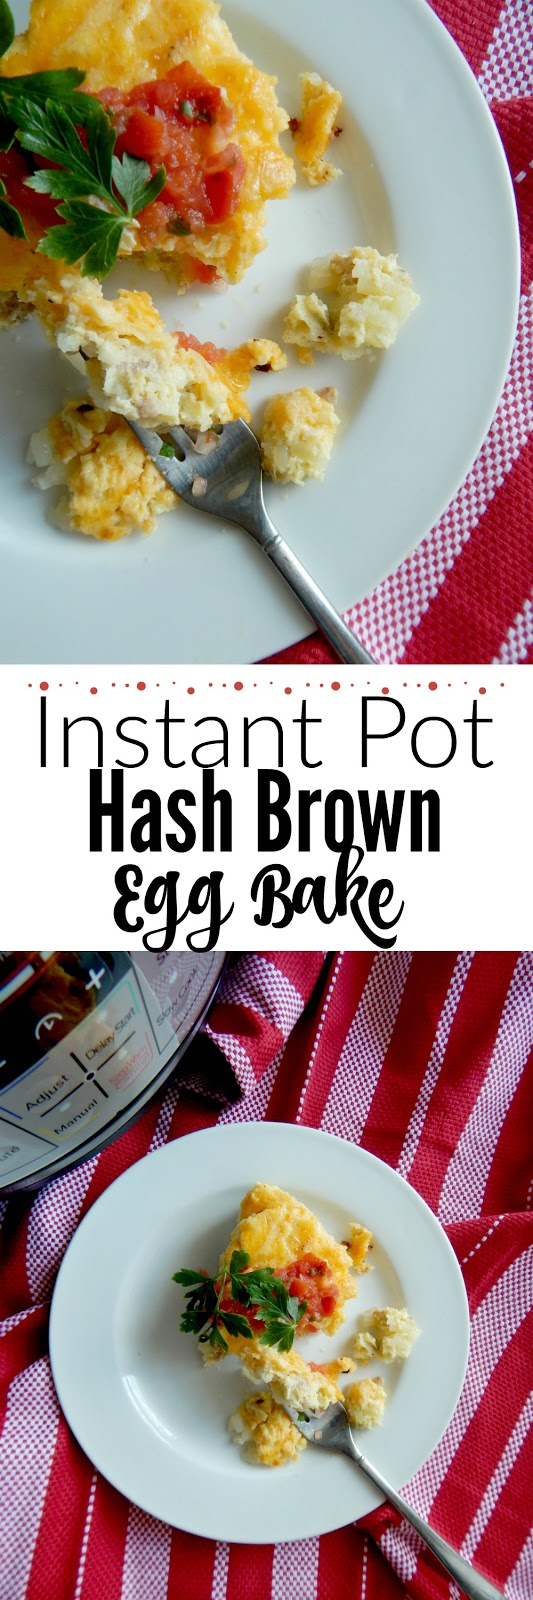 Instant Pot Hash Brown Egg Bake...an easy, quick and delicious, hearty breakfast!  Filled with sausage, hash browns, green chiles and of course eggs - make this for your back-to-school mornings and watch everyone devour. #ad #iowaegg (sweetandsavoryfood.com)